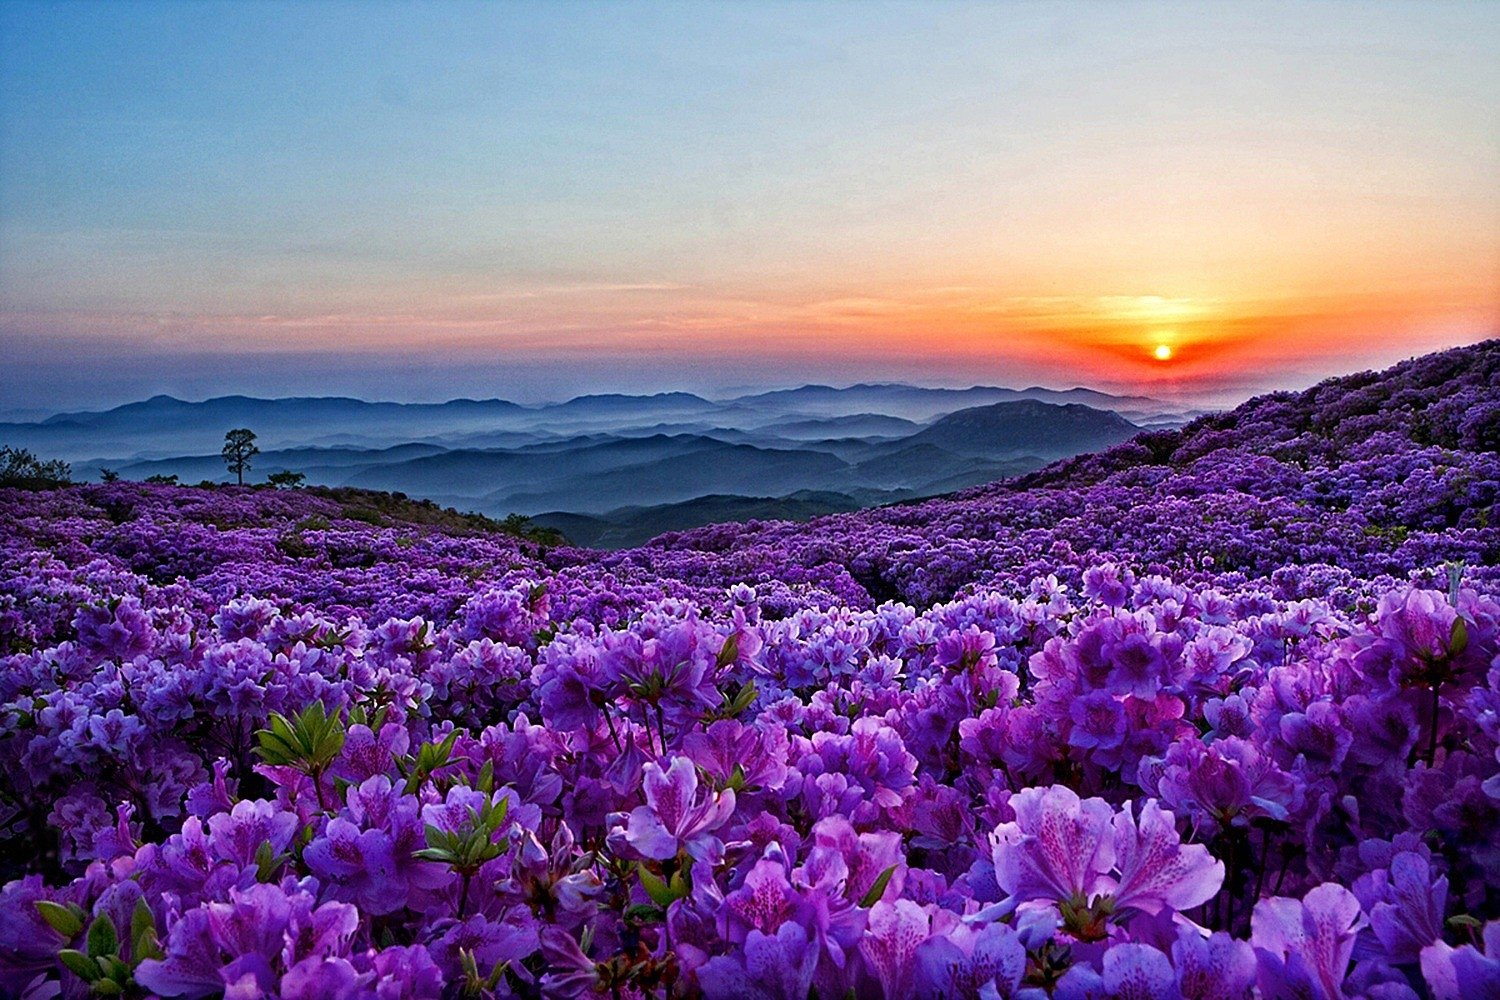 Spring Mountain Landscape Flowers Purple Colored Hills: Spring Flowers In The Mountains Wallpaper And Background